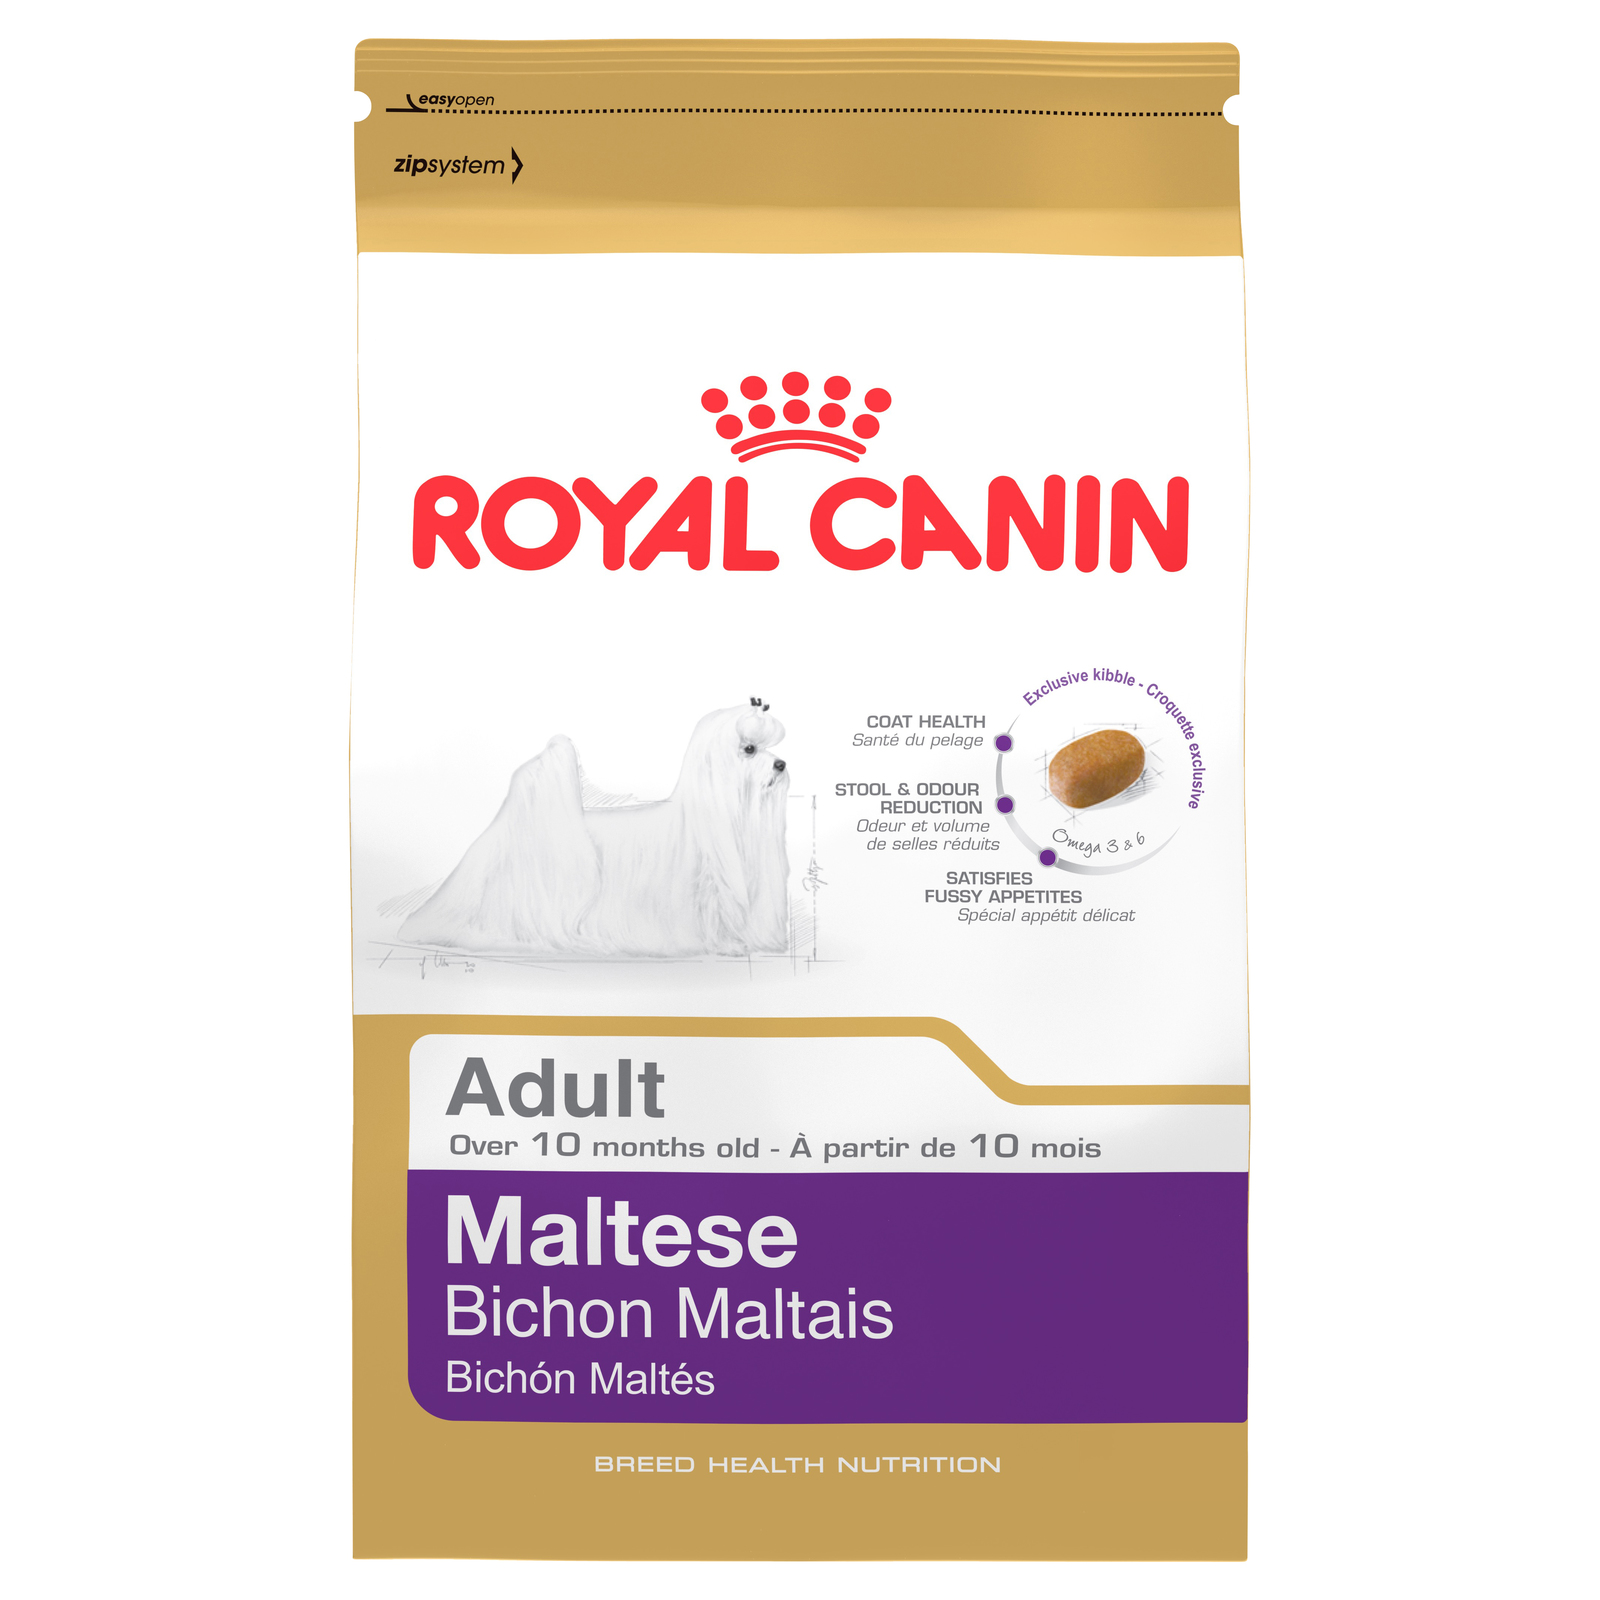 royal canin dry dog food for maltese adult dogs. Black Bedroom Furniture Sets. Home Design Ideas